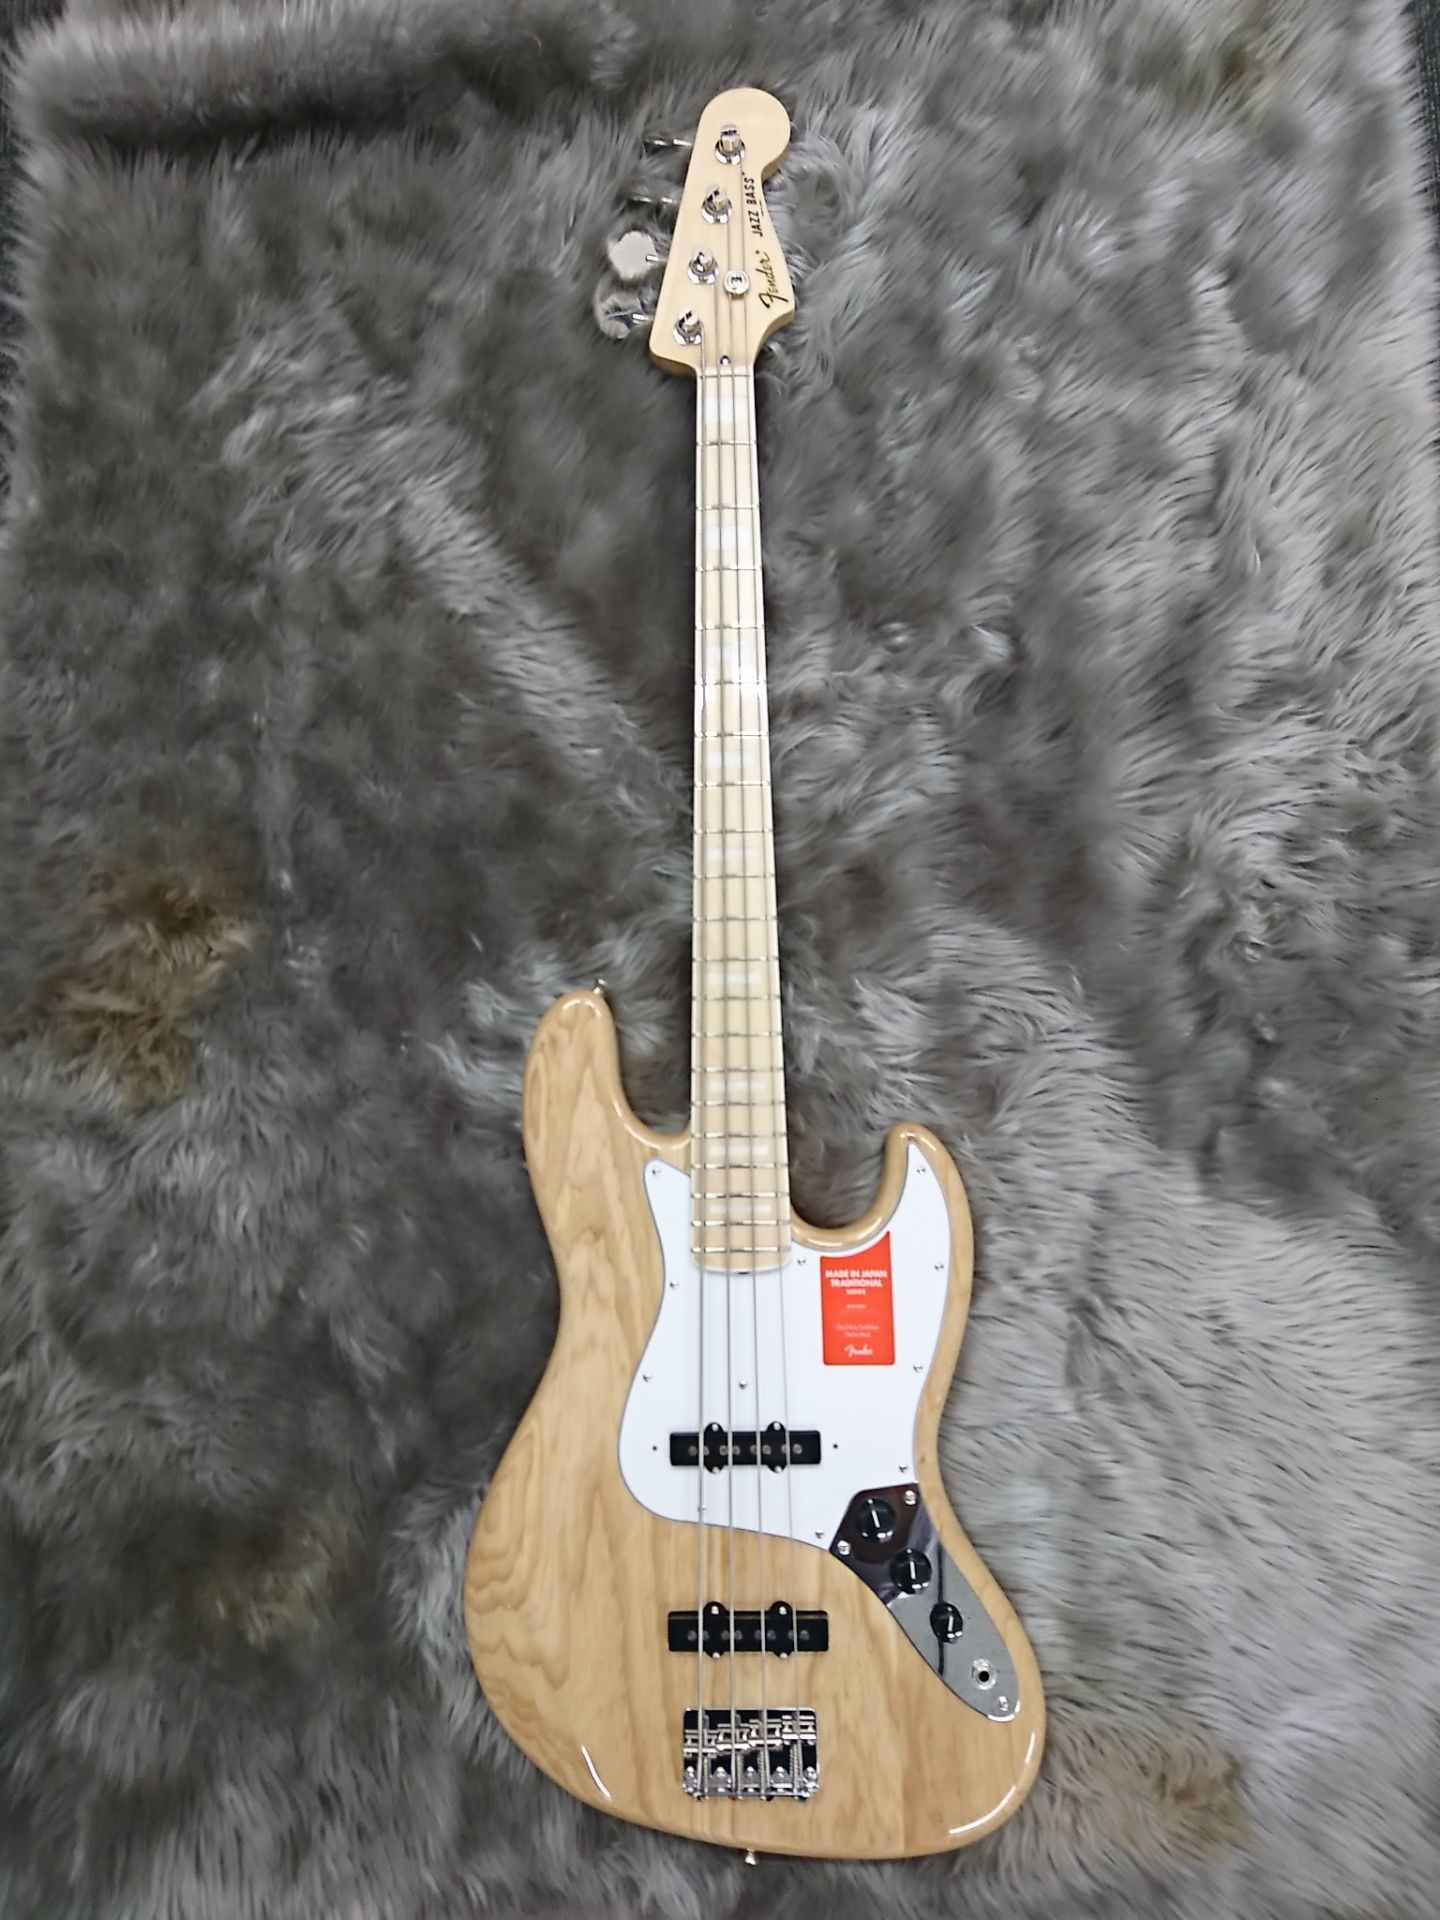 MADE IN JAPAN TRADITIONAL 70S JAZZ BASSの全体画像(縦)